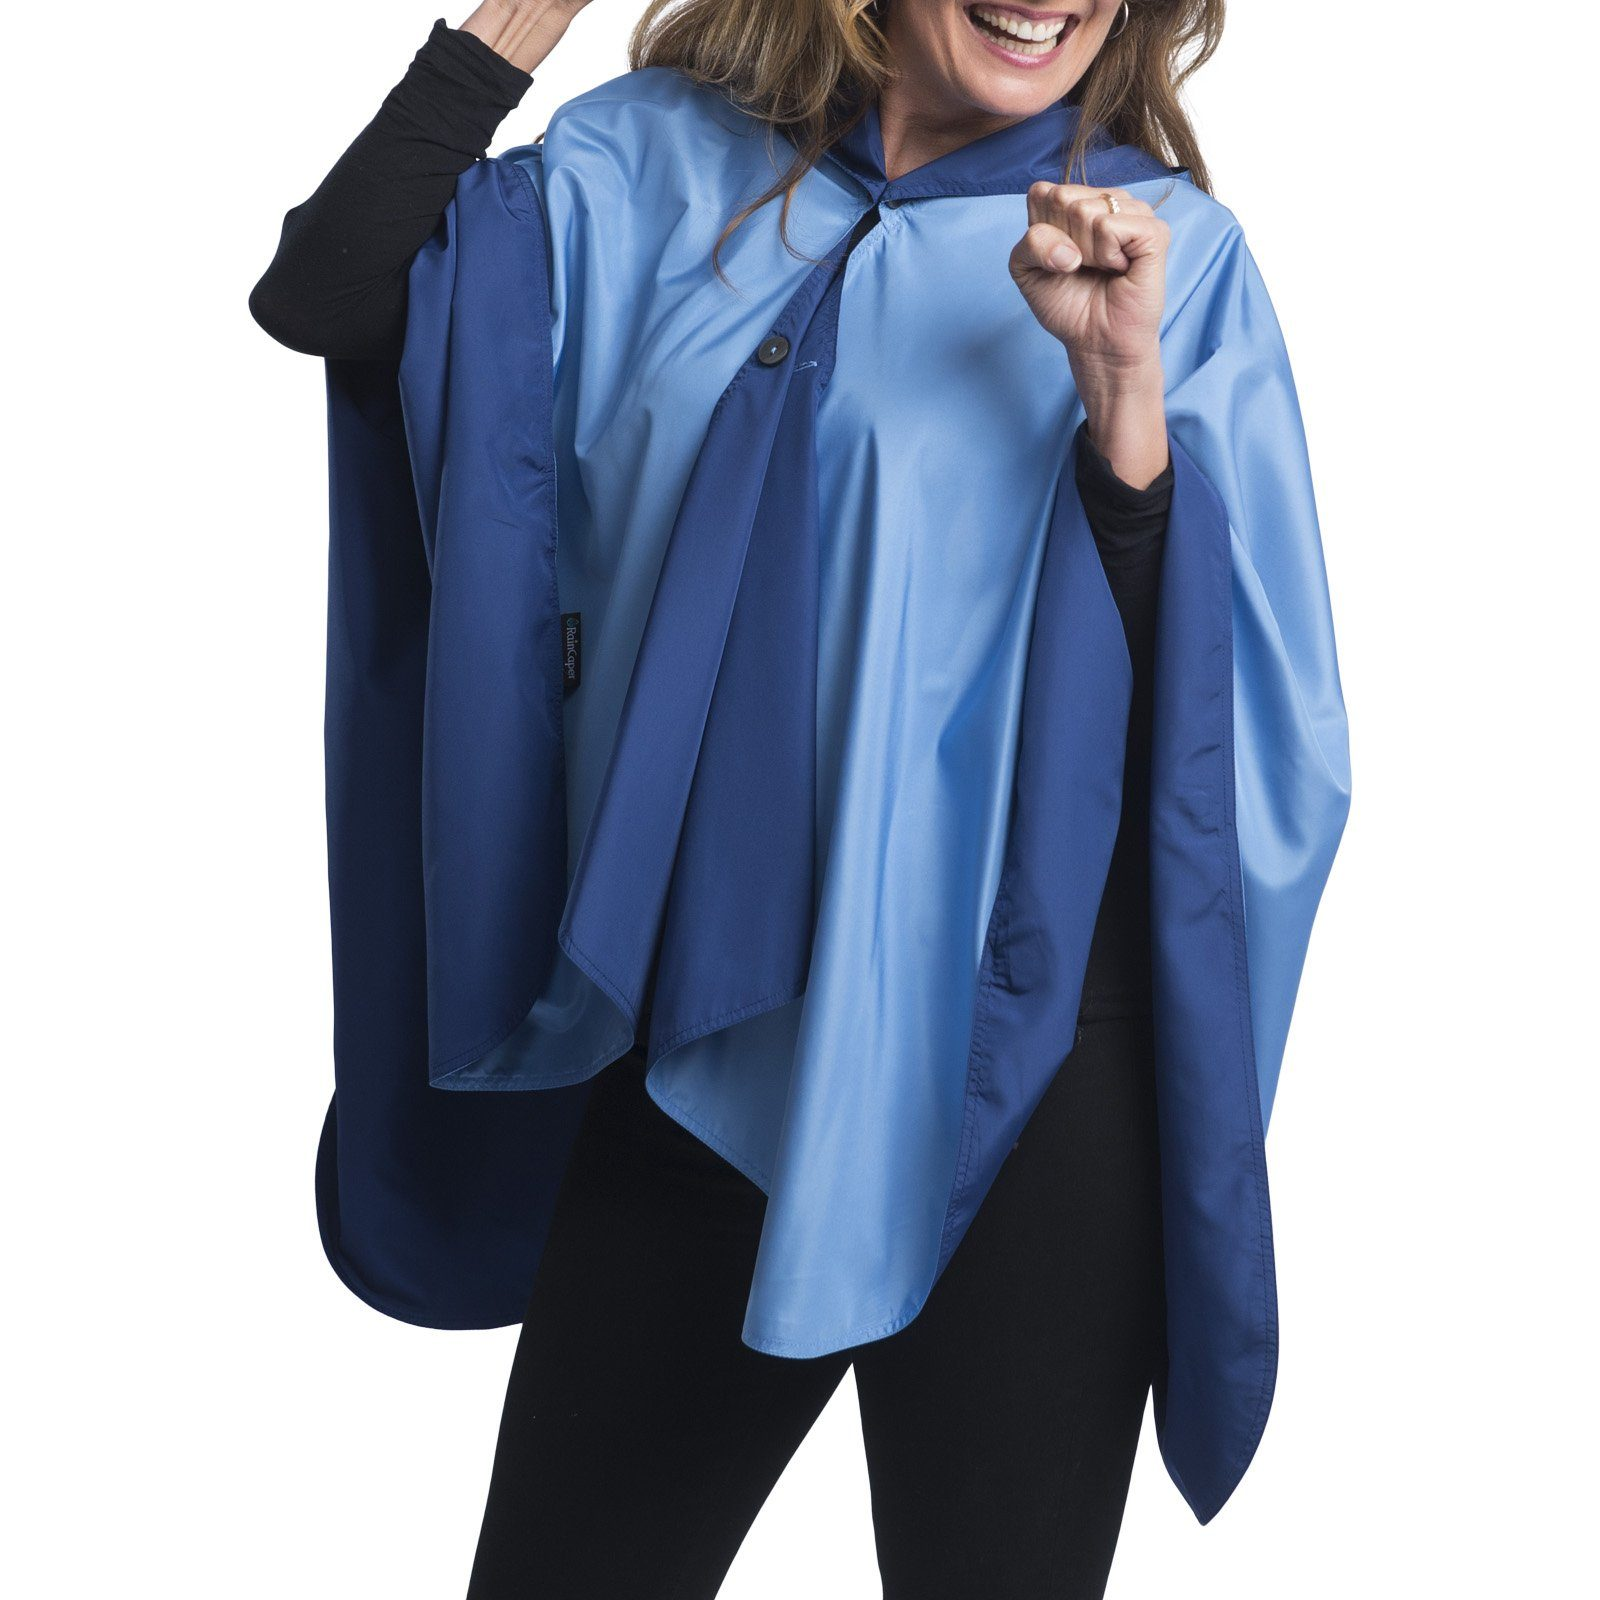 SpiritCaper Navy & Carolina Blue Wind & Rainproof Sports & Cheer Cape